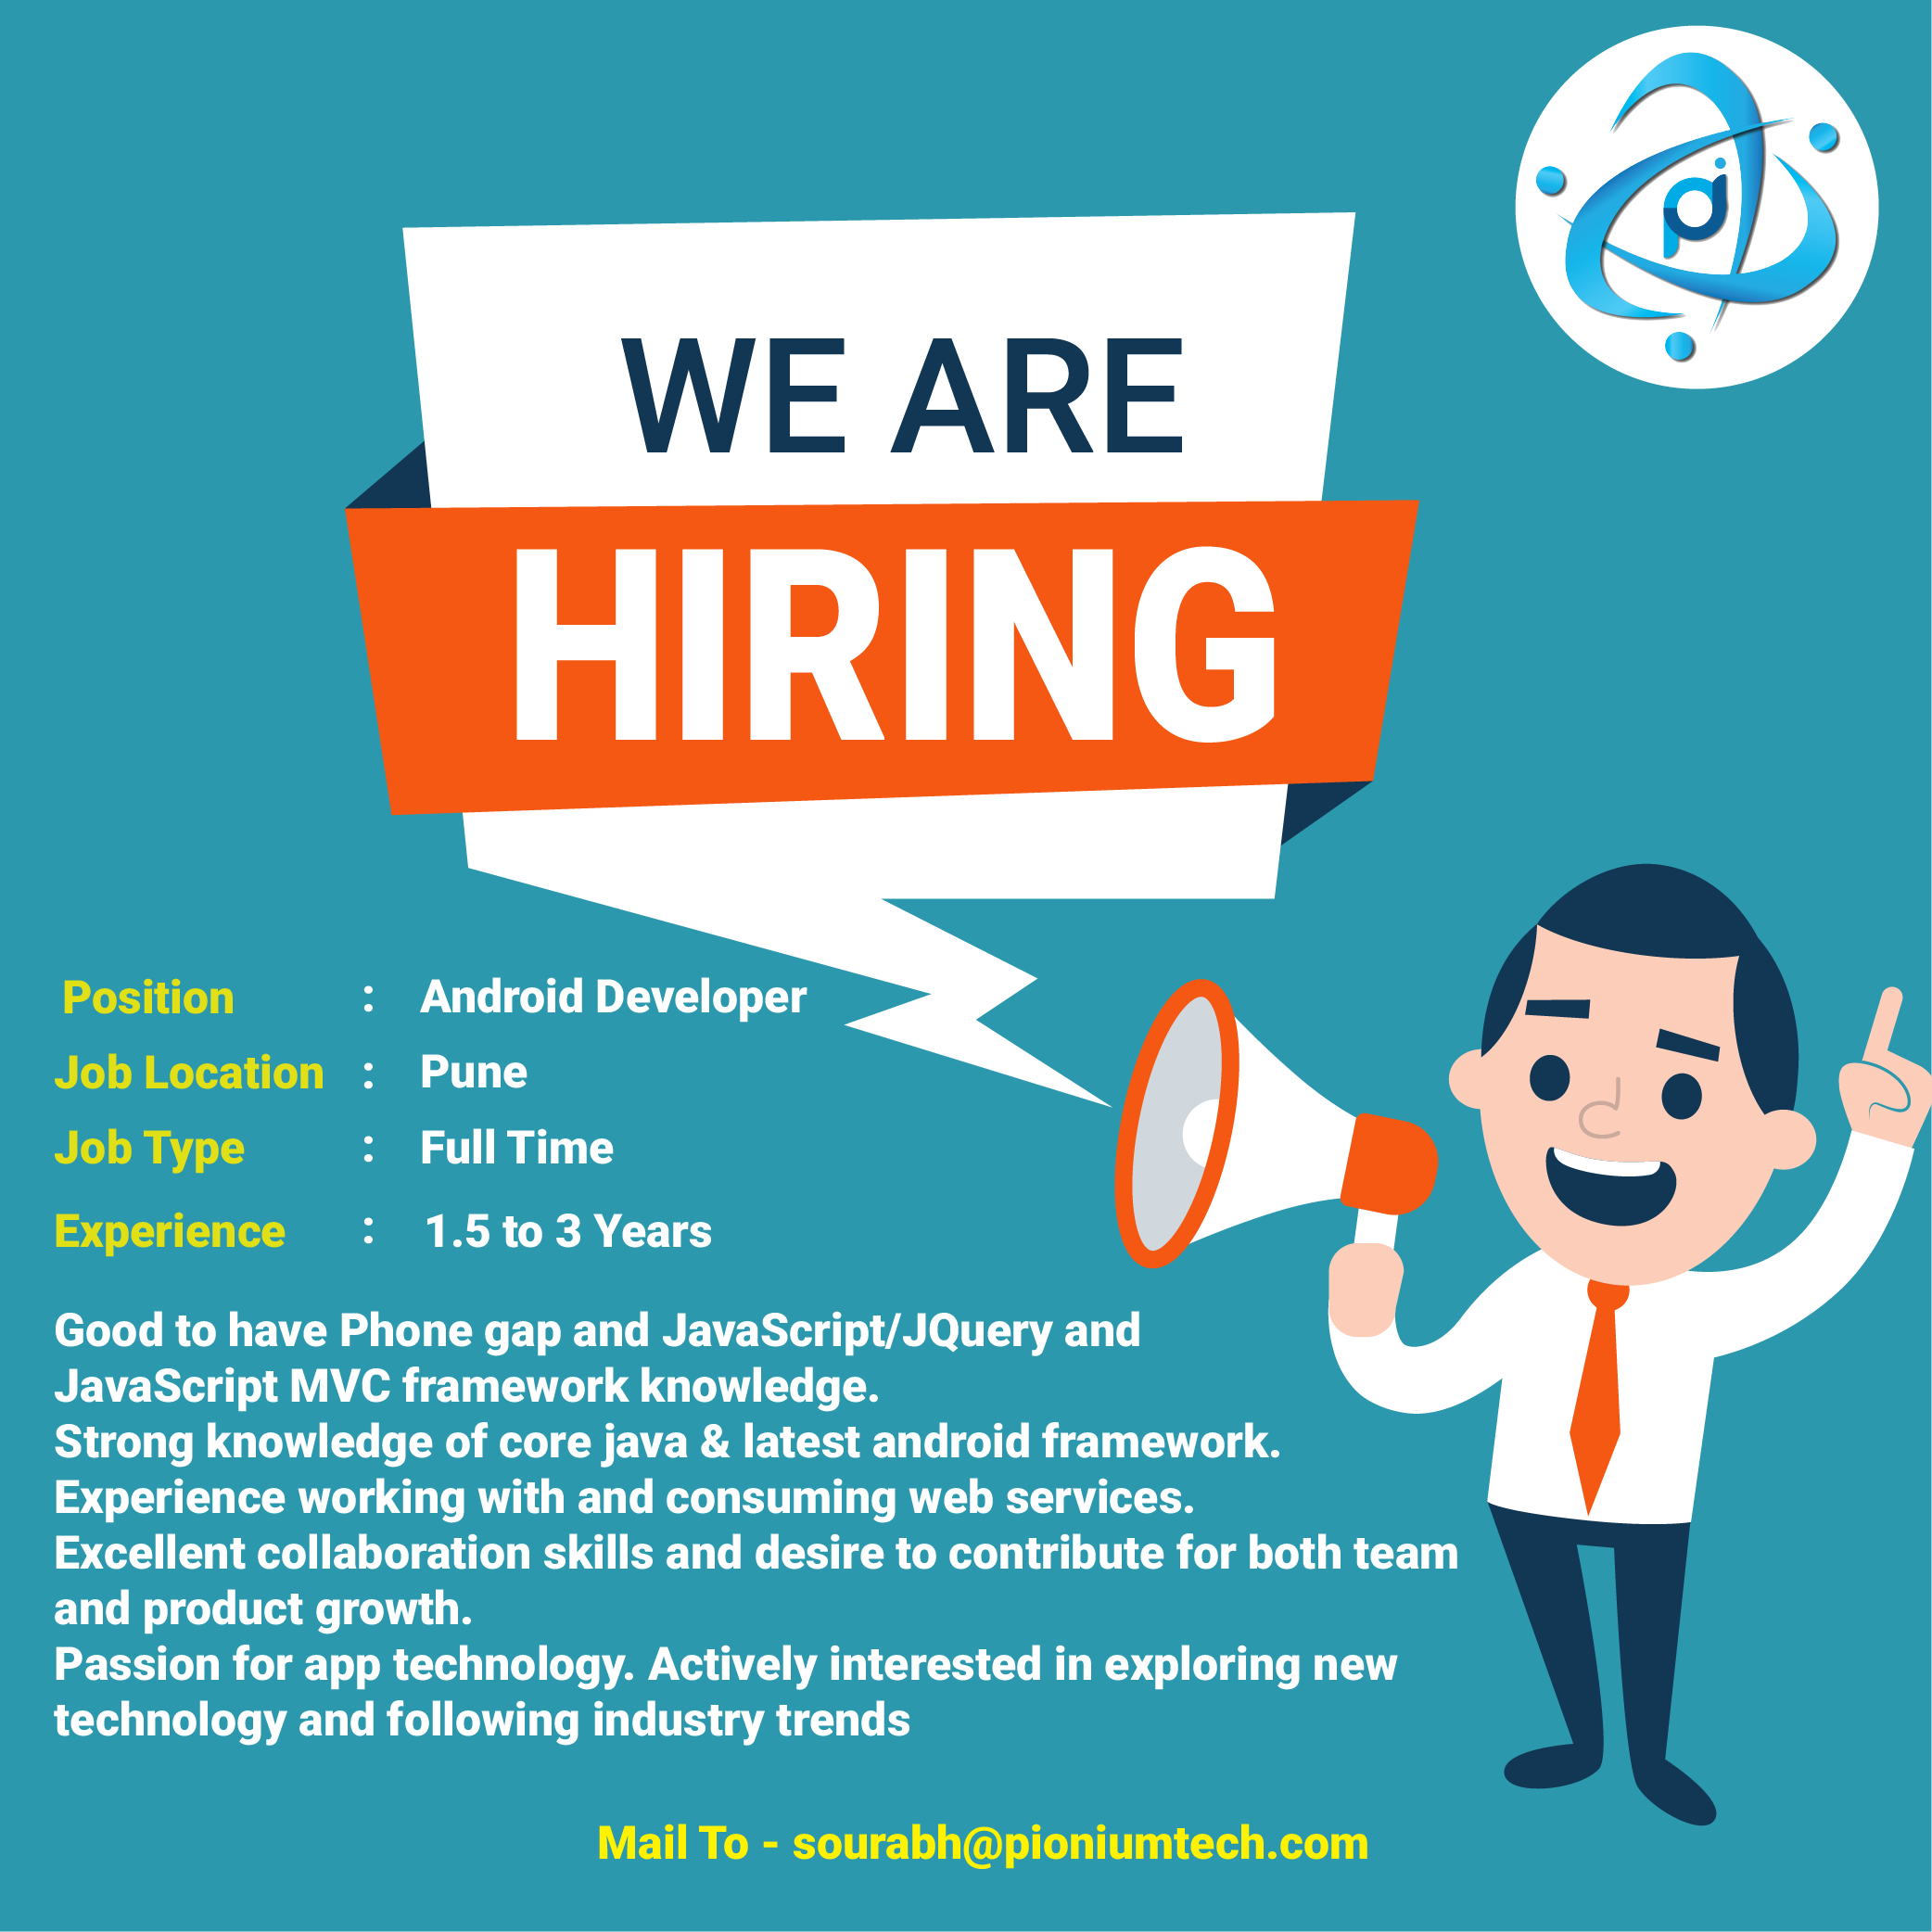 Android Development Recruitment Poster Design Job Poster We Are Hiring